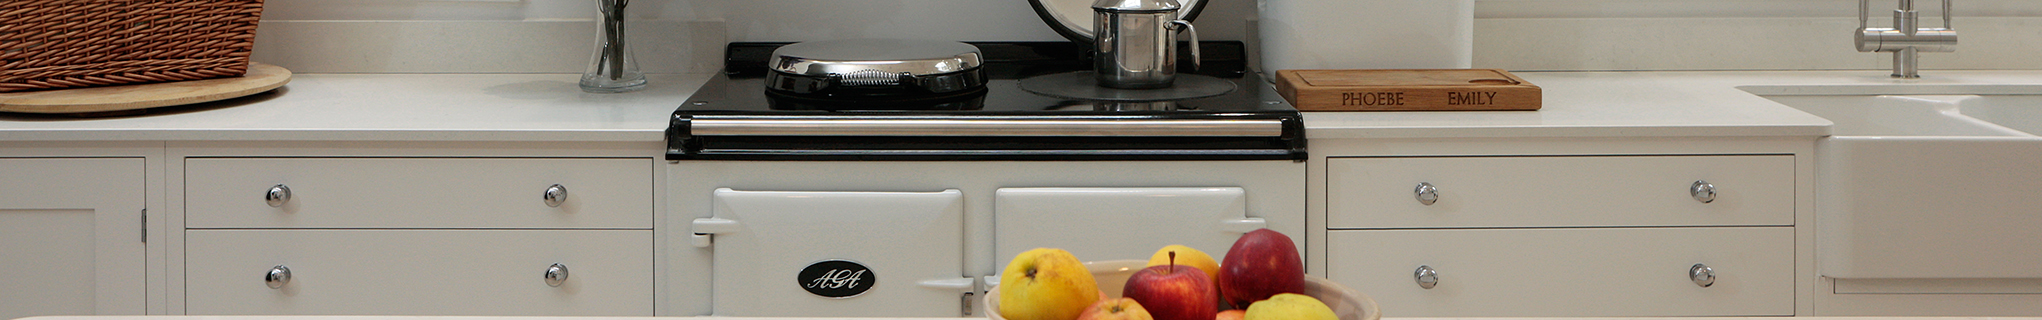 Reconditioned vs new AGA cooker